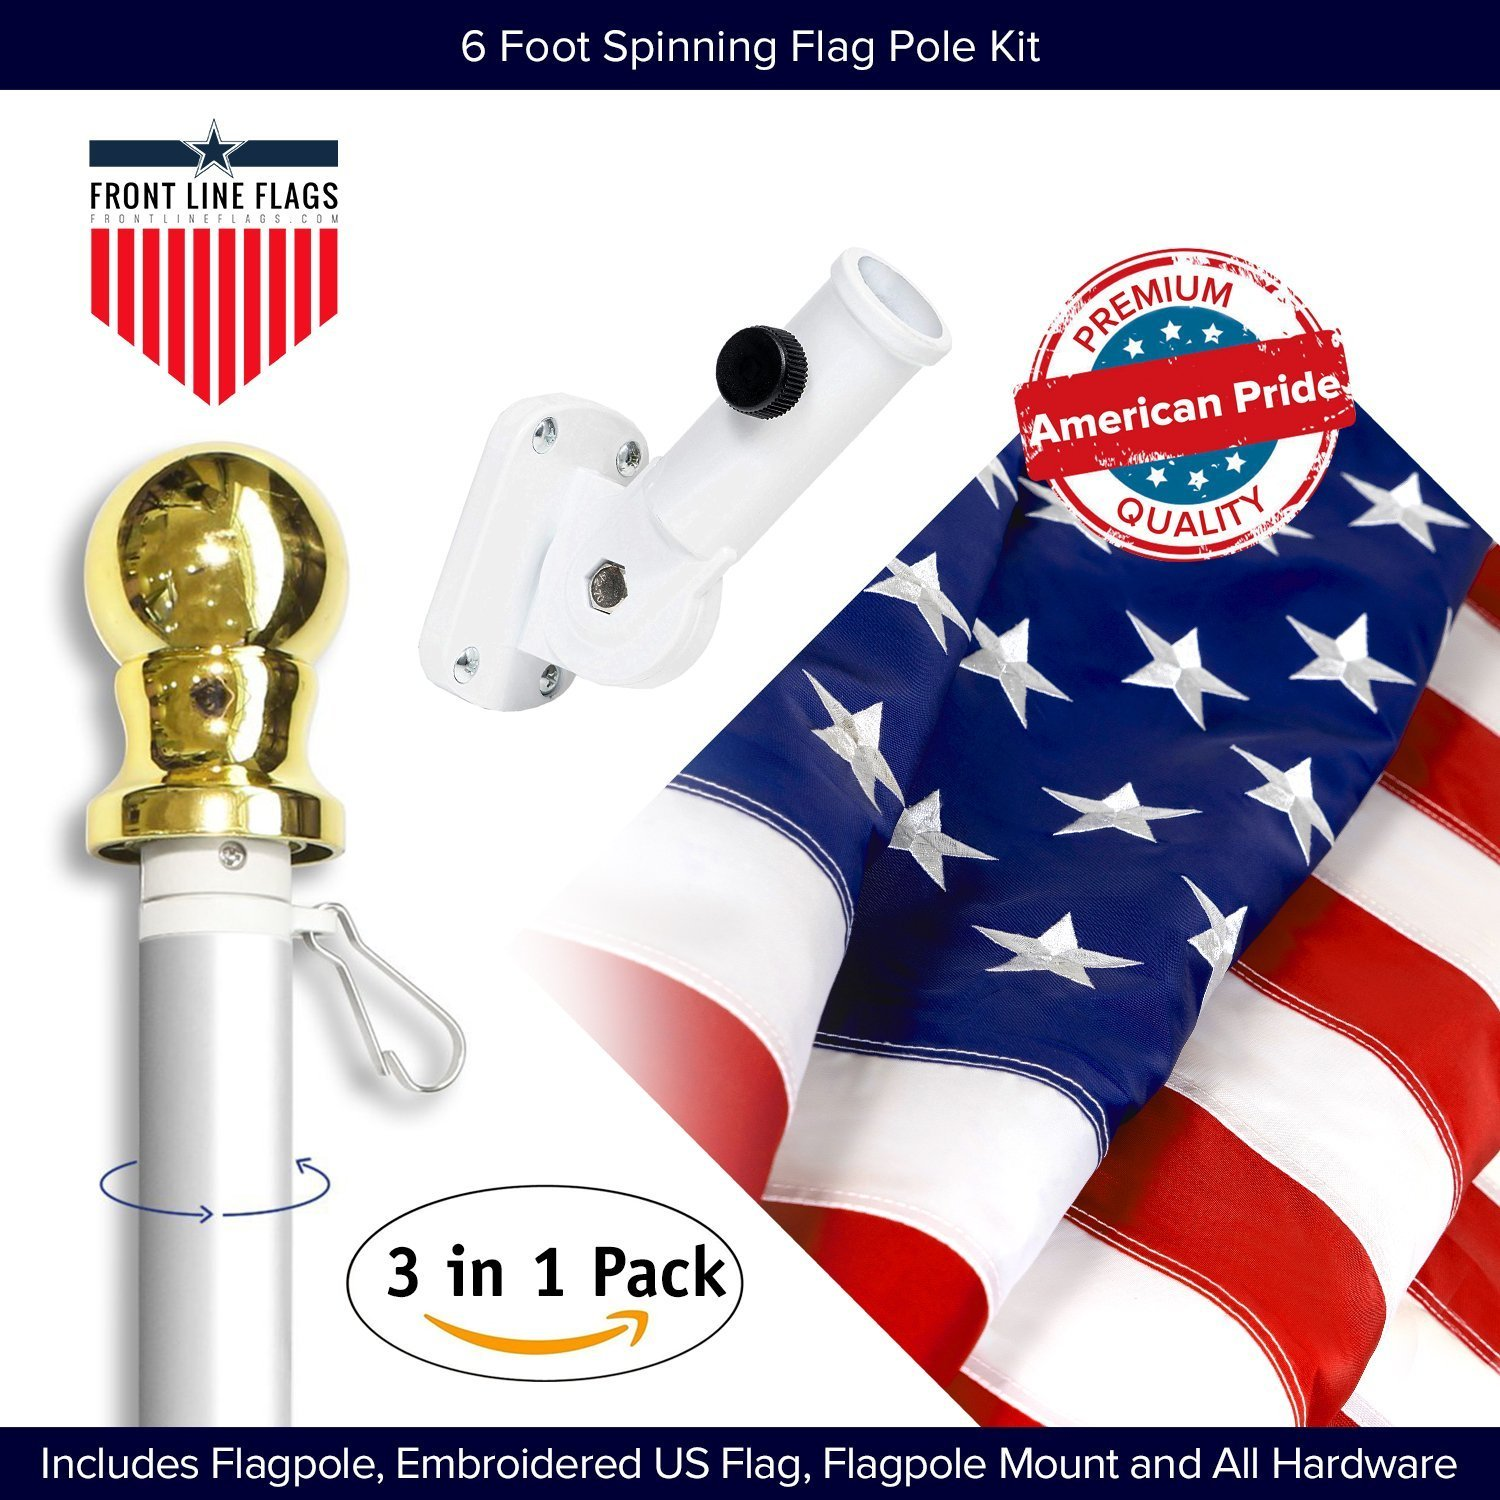 American Flag Kit Includes: 6ft Spinning Flagpole, 3x5 Embroidered US Flag, Adjustable Wall Mount Flag Holder, Commercial Residential Indoor Outdoor Use | US Flag Kit, Silver